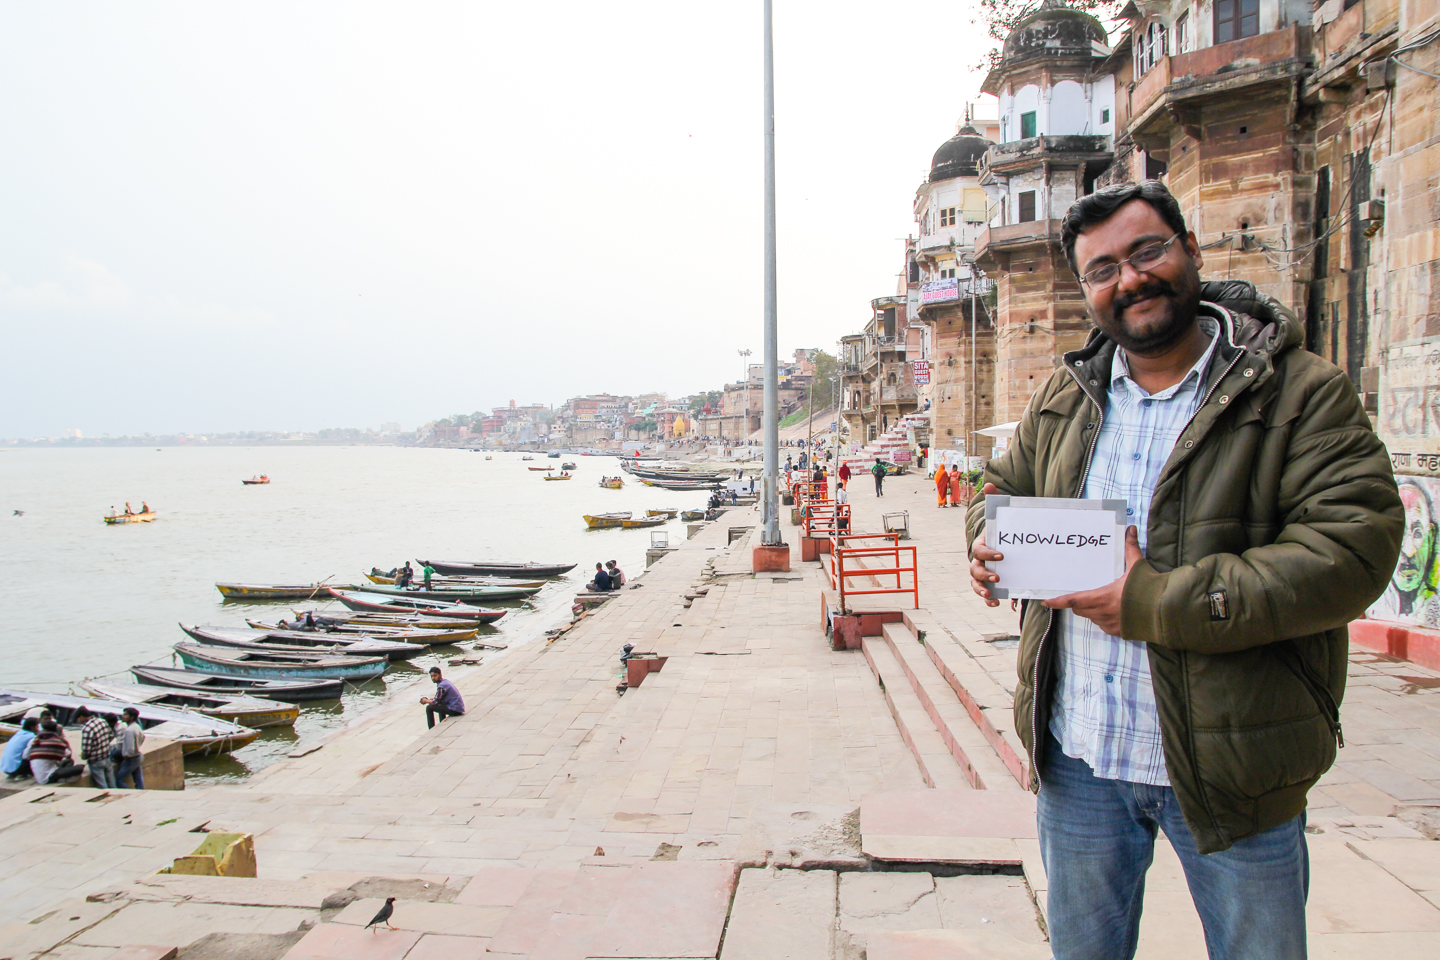 Born and raised in Varanasi, Utpal Pathak has a deep understanding of the importance of chai in one of India's holiest cities. Now a journalist based in Patna, Bihar, Utpal associates chai with knowledge. 'Knowledge is what you learn from the old people about the past. If I was older I would say wisdom. Once I have gained the knowledge it will be wisdom. People here know the art of dying. We see the burning ghats every morning. People call Varanasi the city of death, but here, death is a festival. We also don't need to think about the art of living because we already know how to live. We wake up early in the morning take a bath in the Ganga, take bhaang, eat paan, eat delicious foods, talk about politics, drink chai. I know this because I am a Banarasi.'